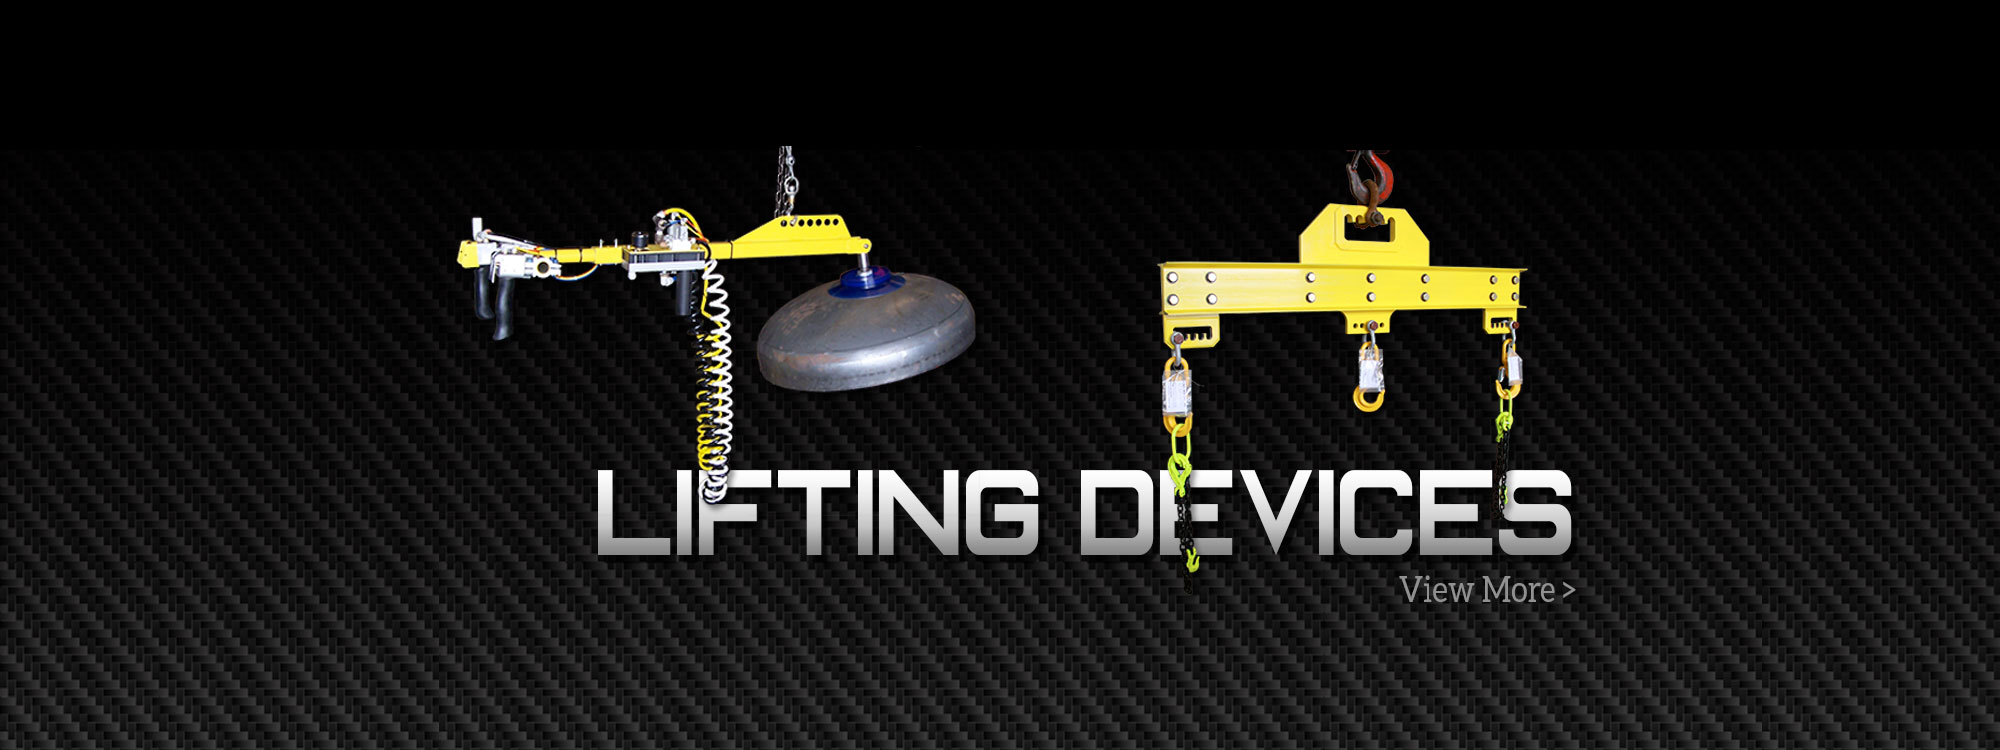 liftingdevices